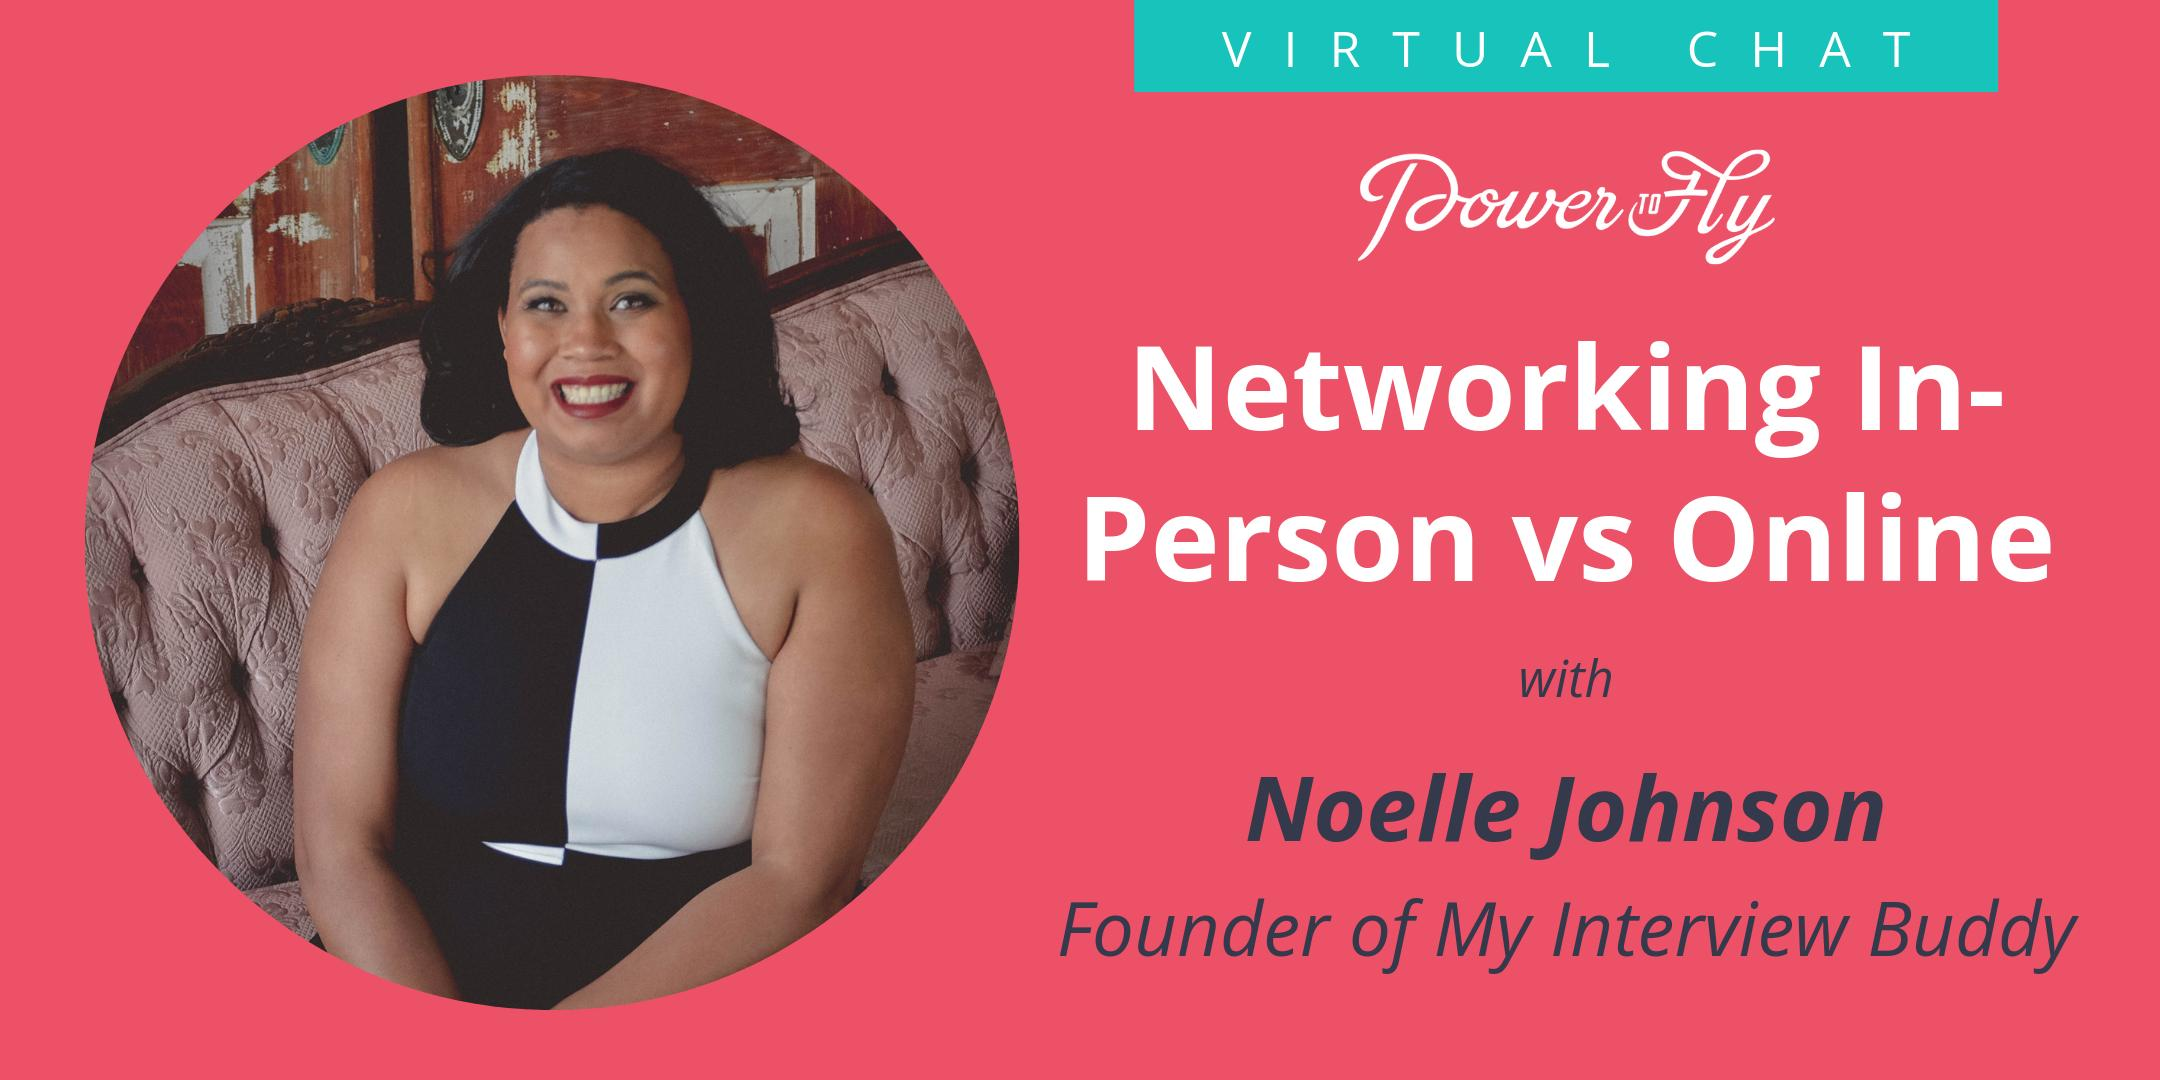 Networking In-Person vs Online